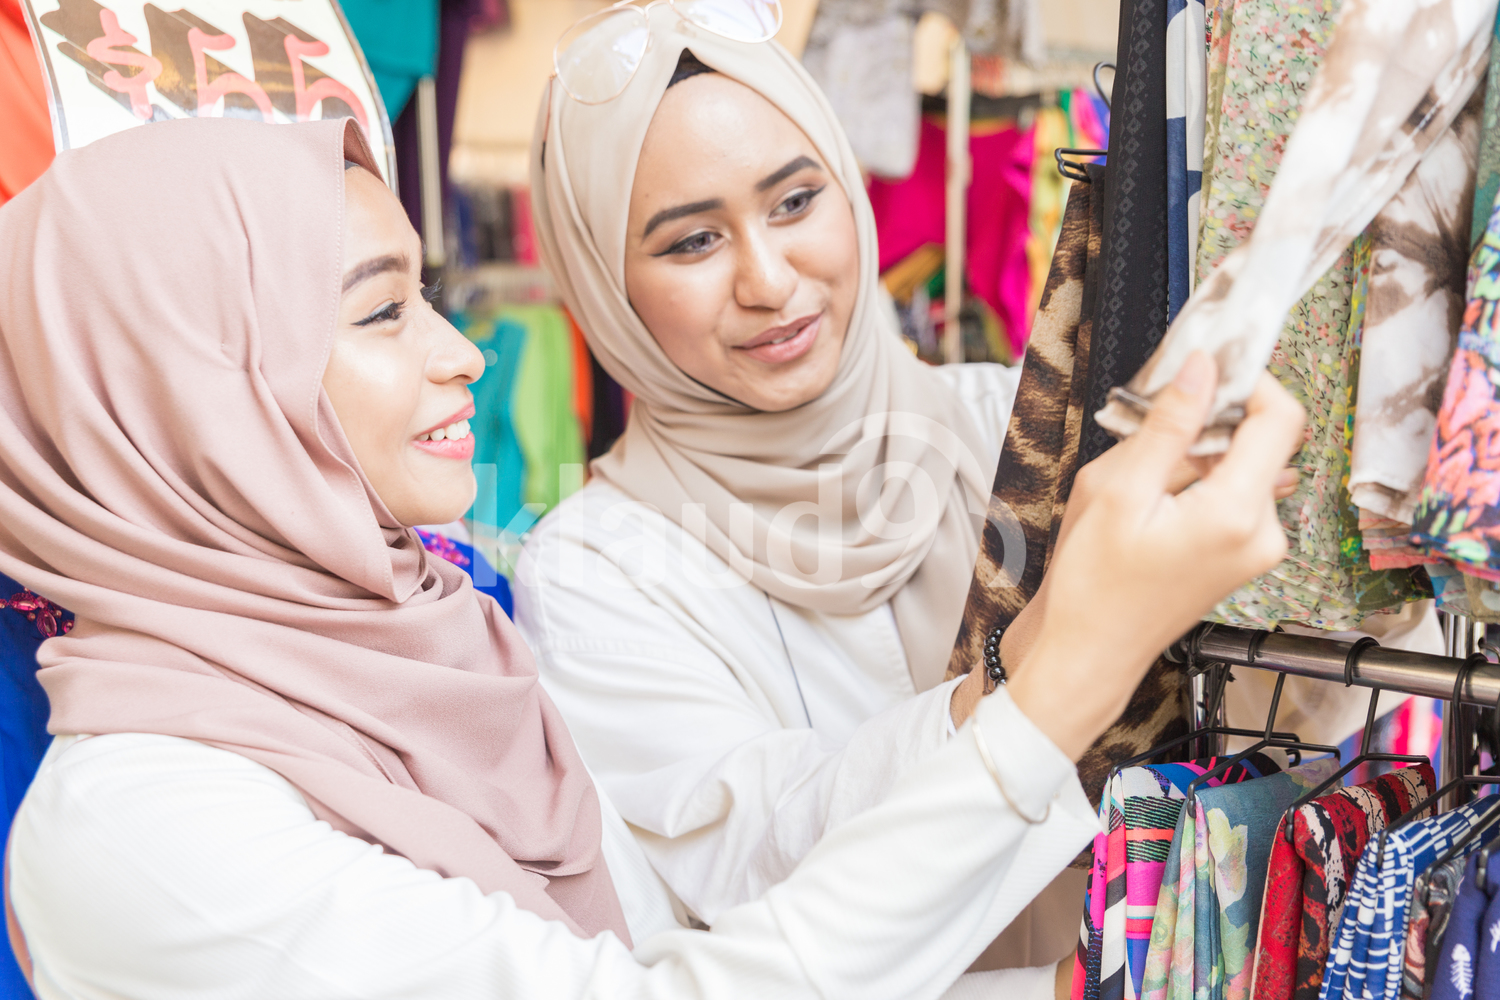 Two muslim women shopping for scarves